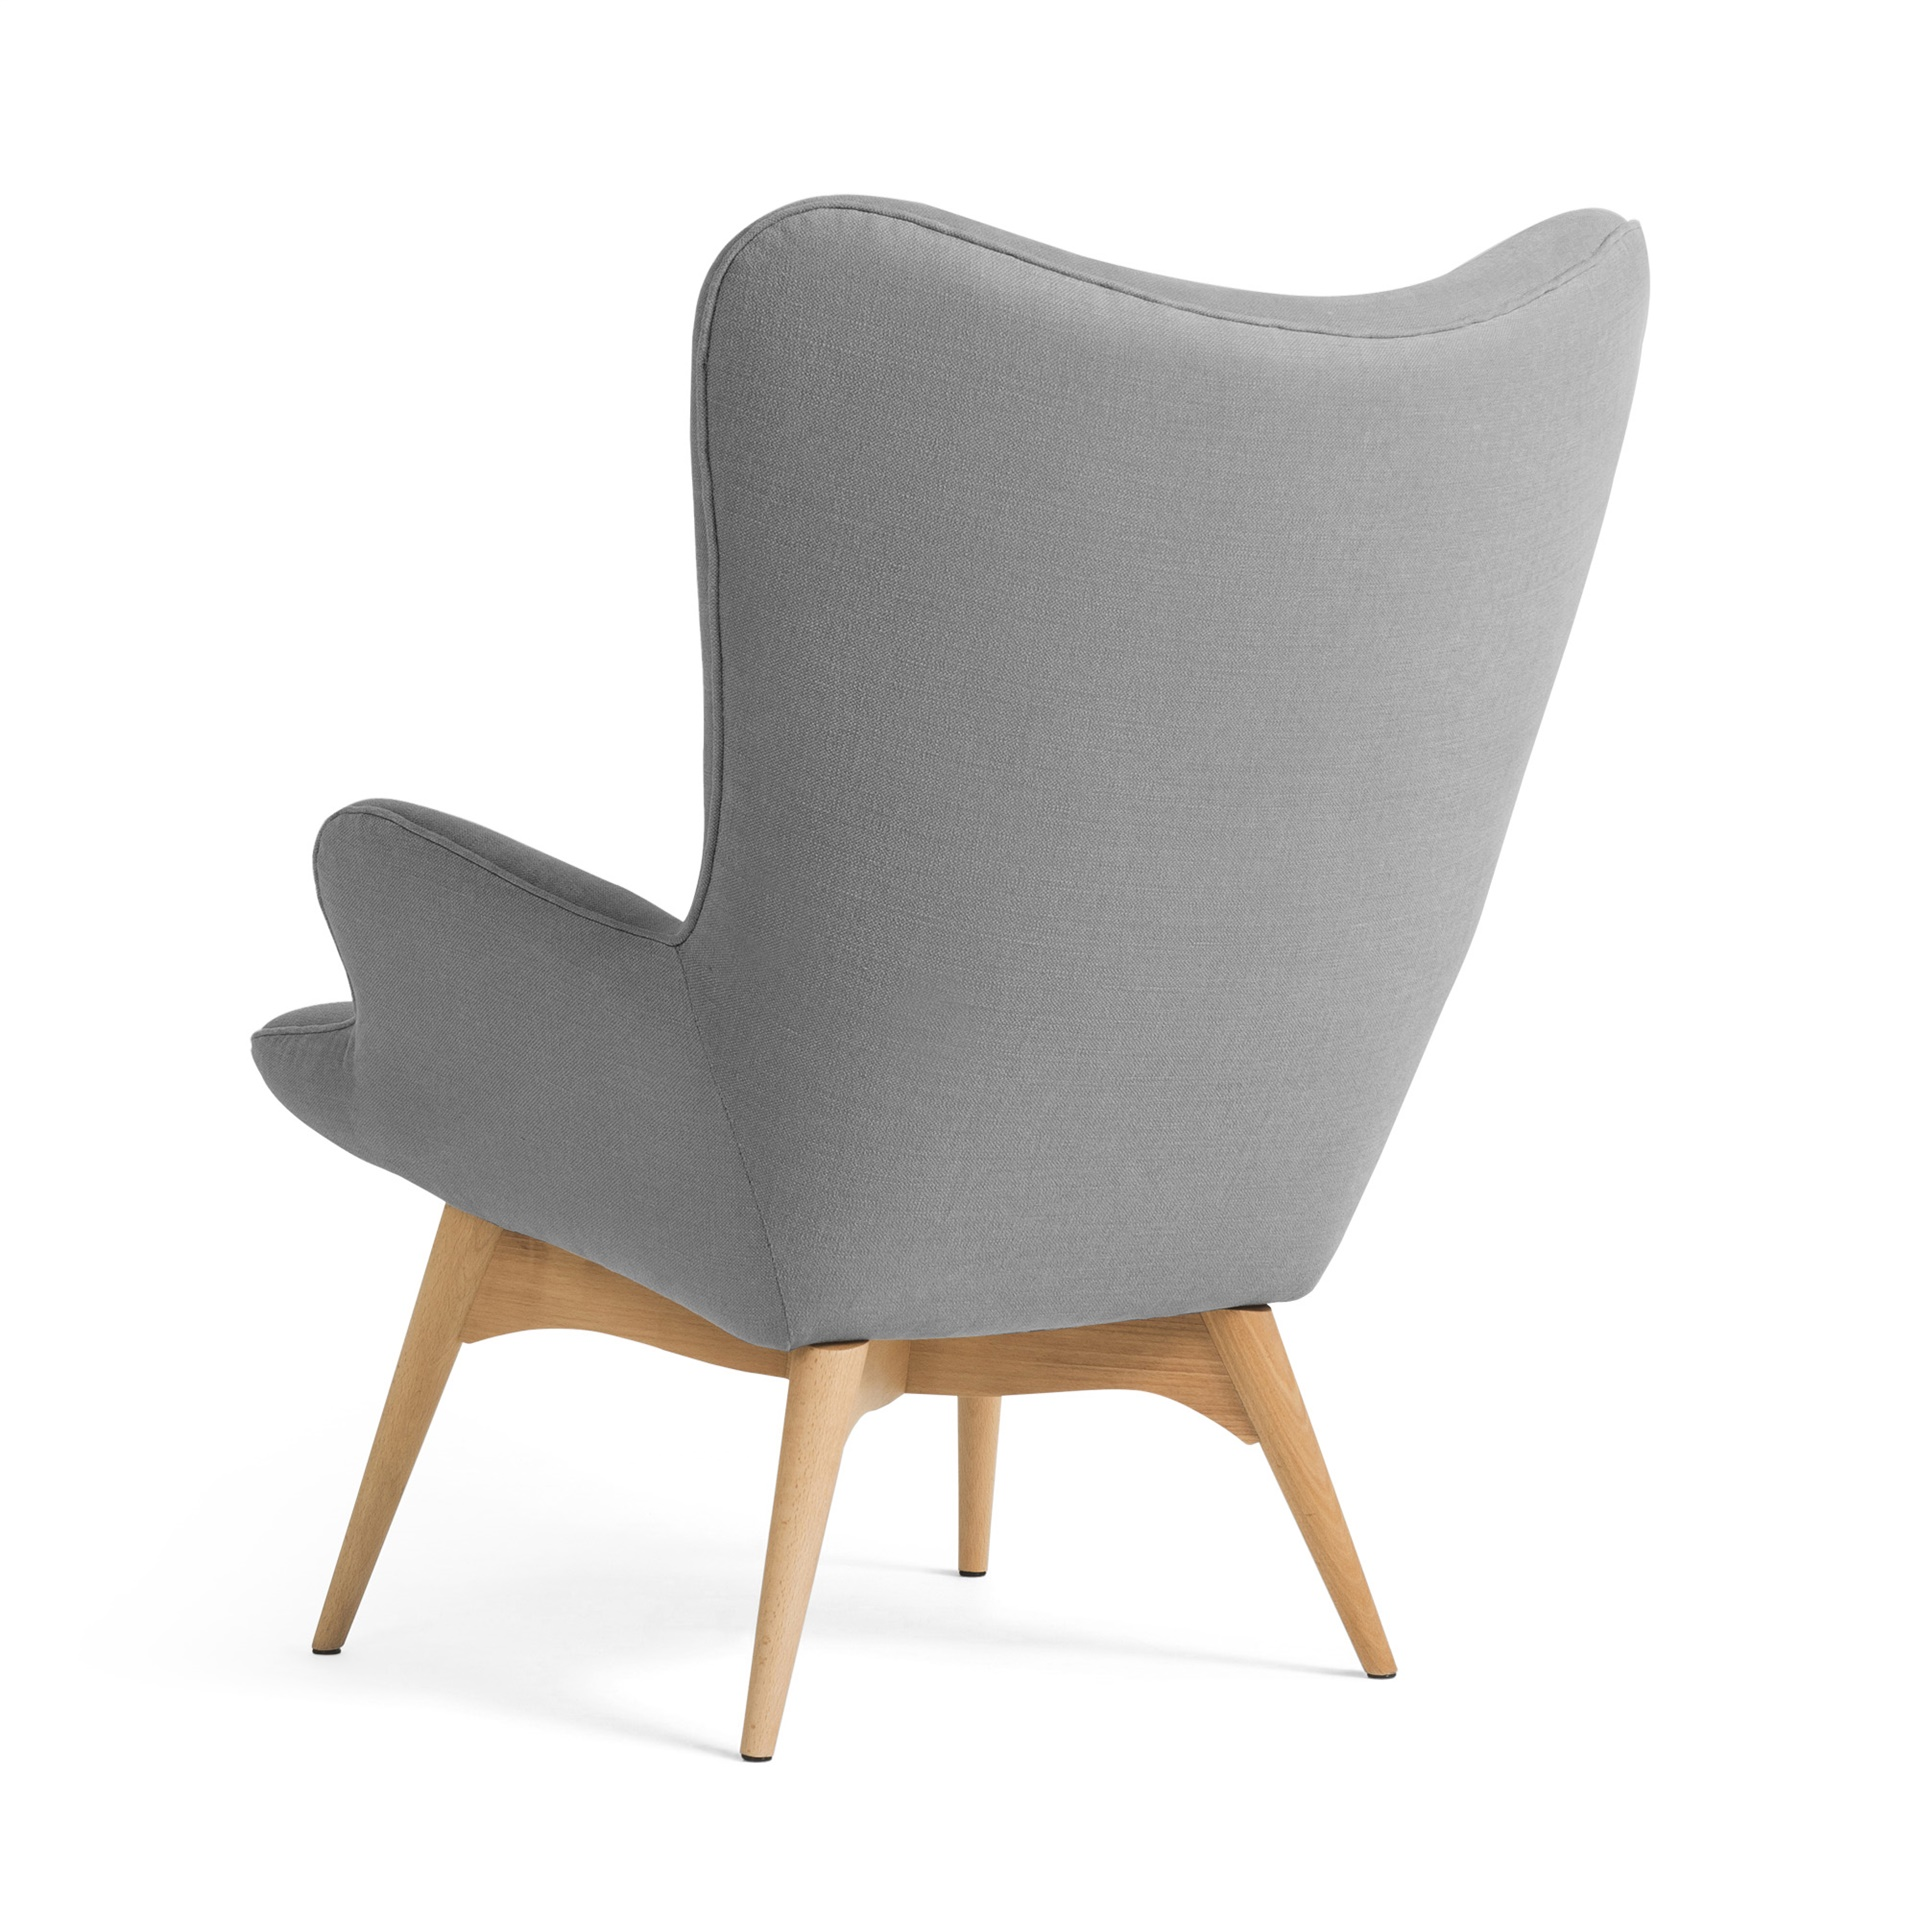 Cool Grant Featherston Contour Lounge Chair Evergreenethics Interior Chair Design Evergreenethicsorg